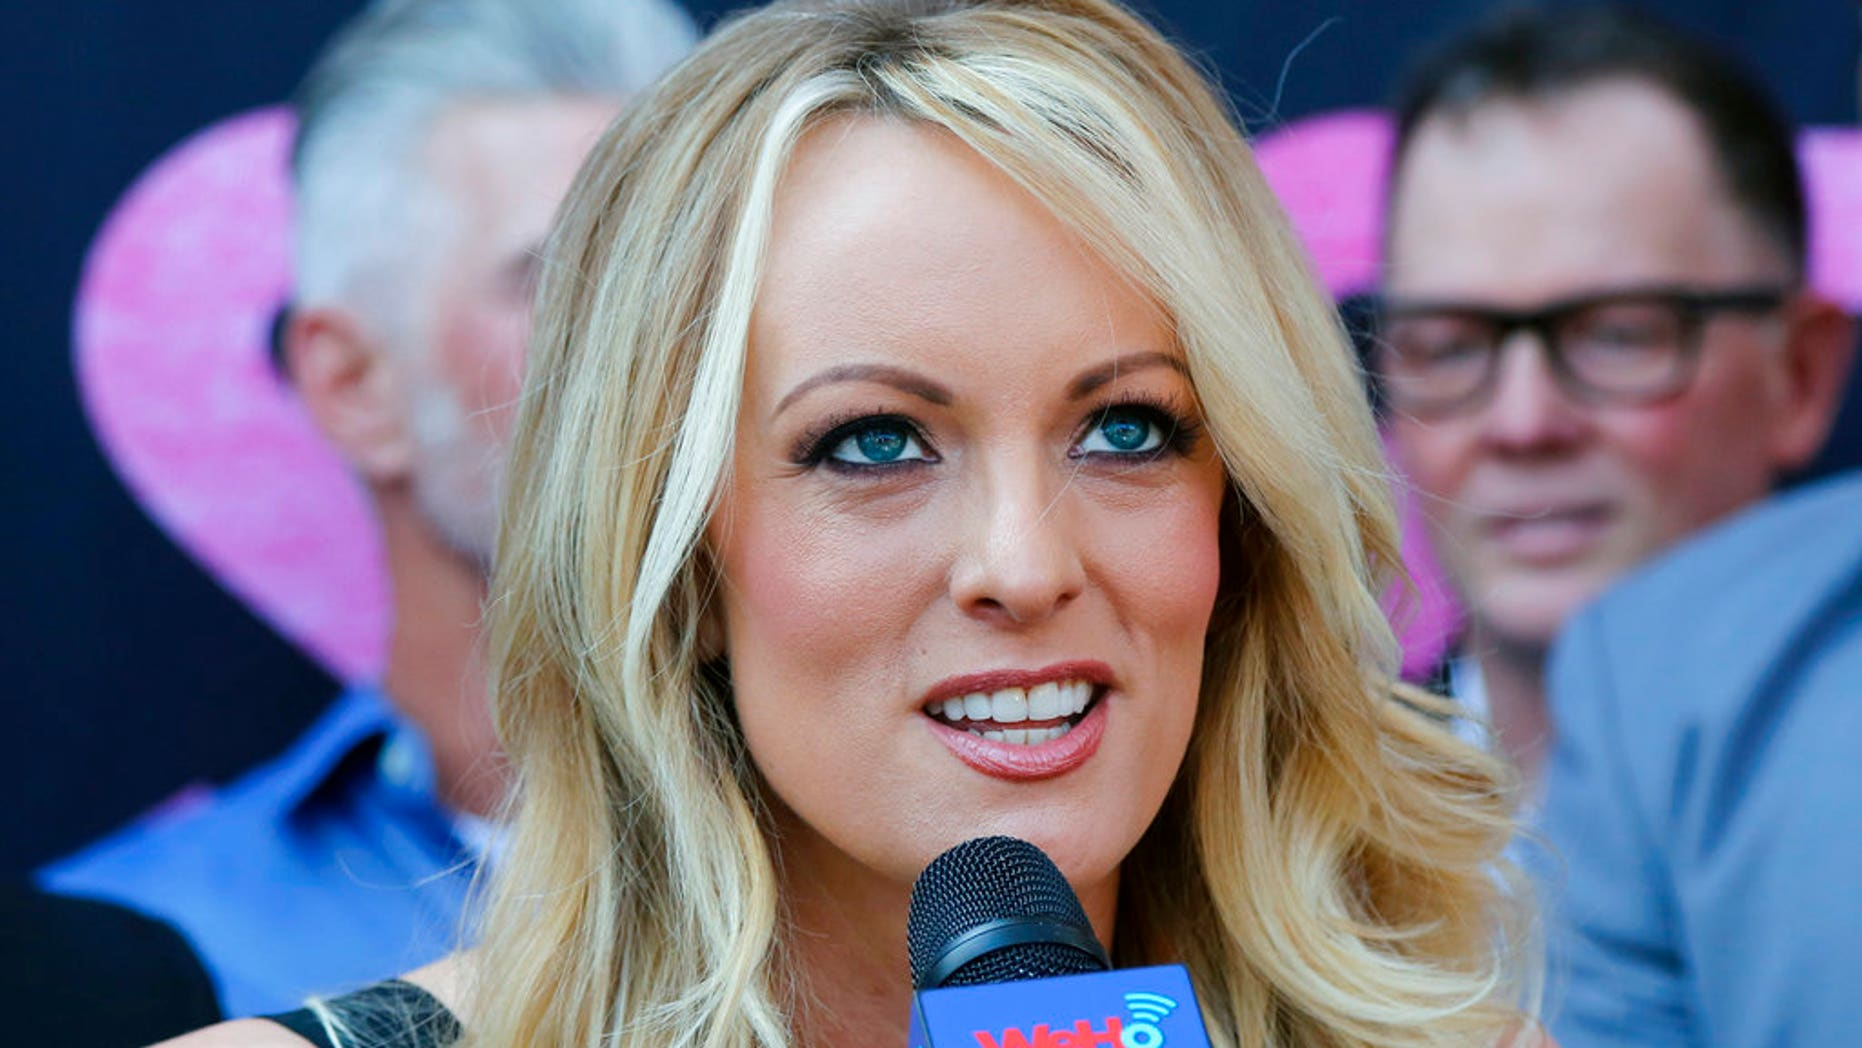 FILE: Adult film actress Stormy Daniels, speaks during a ceremony for her receiving a City Proclamation and Key to the City in West Hollywood, Calif.